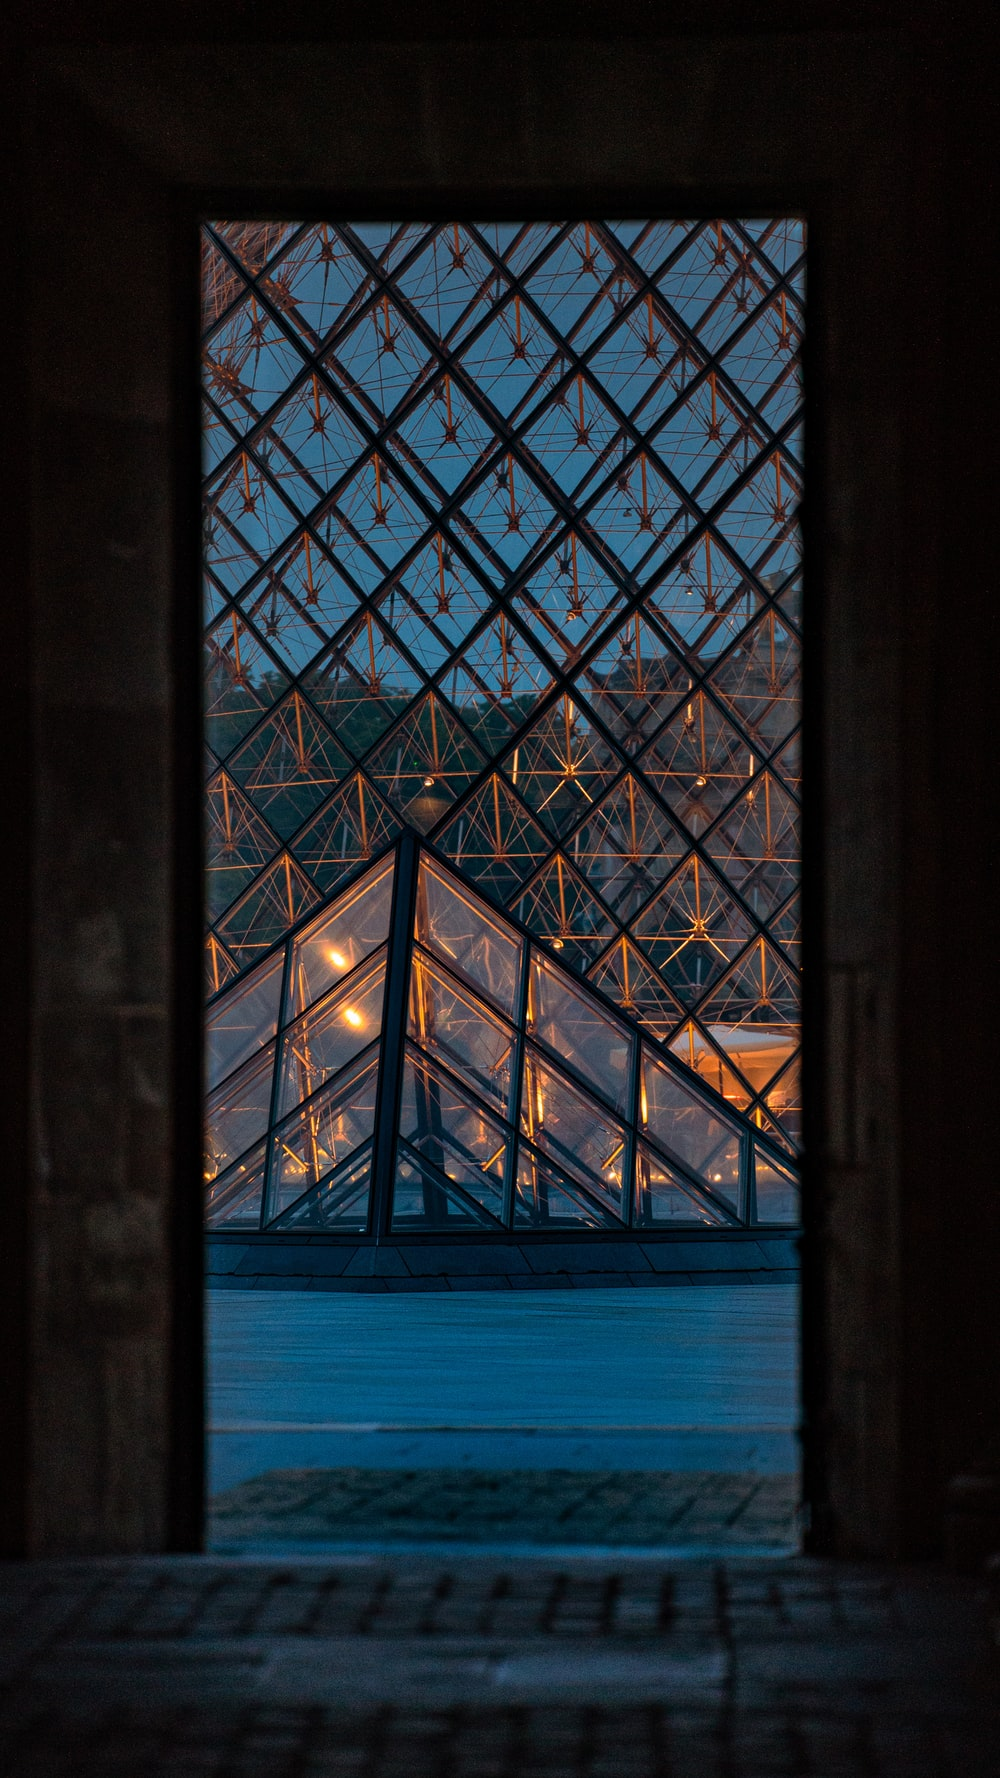 black framed glass window during night time